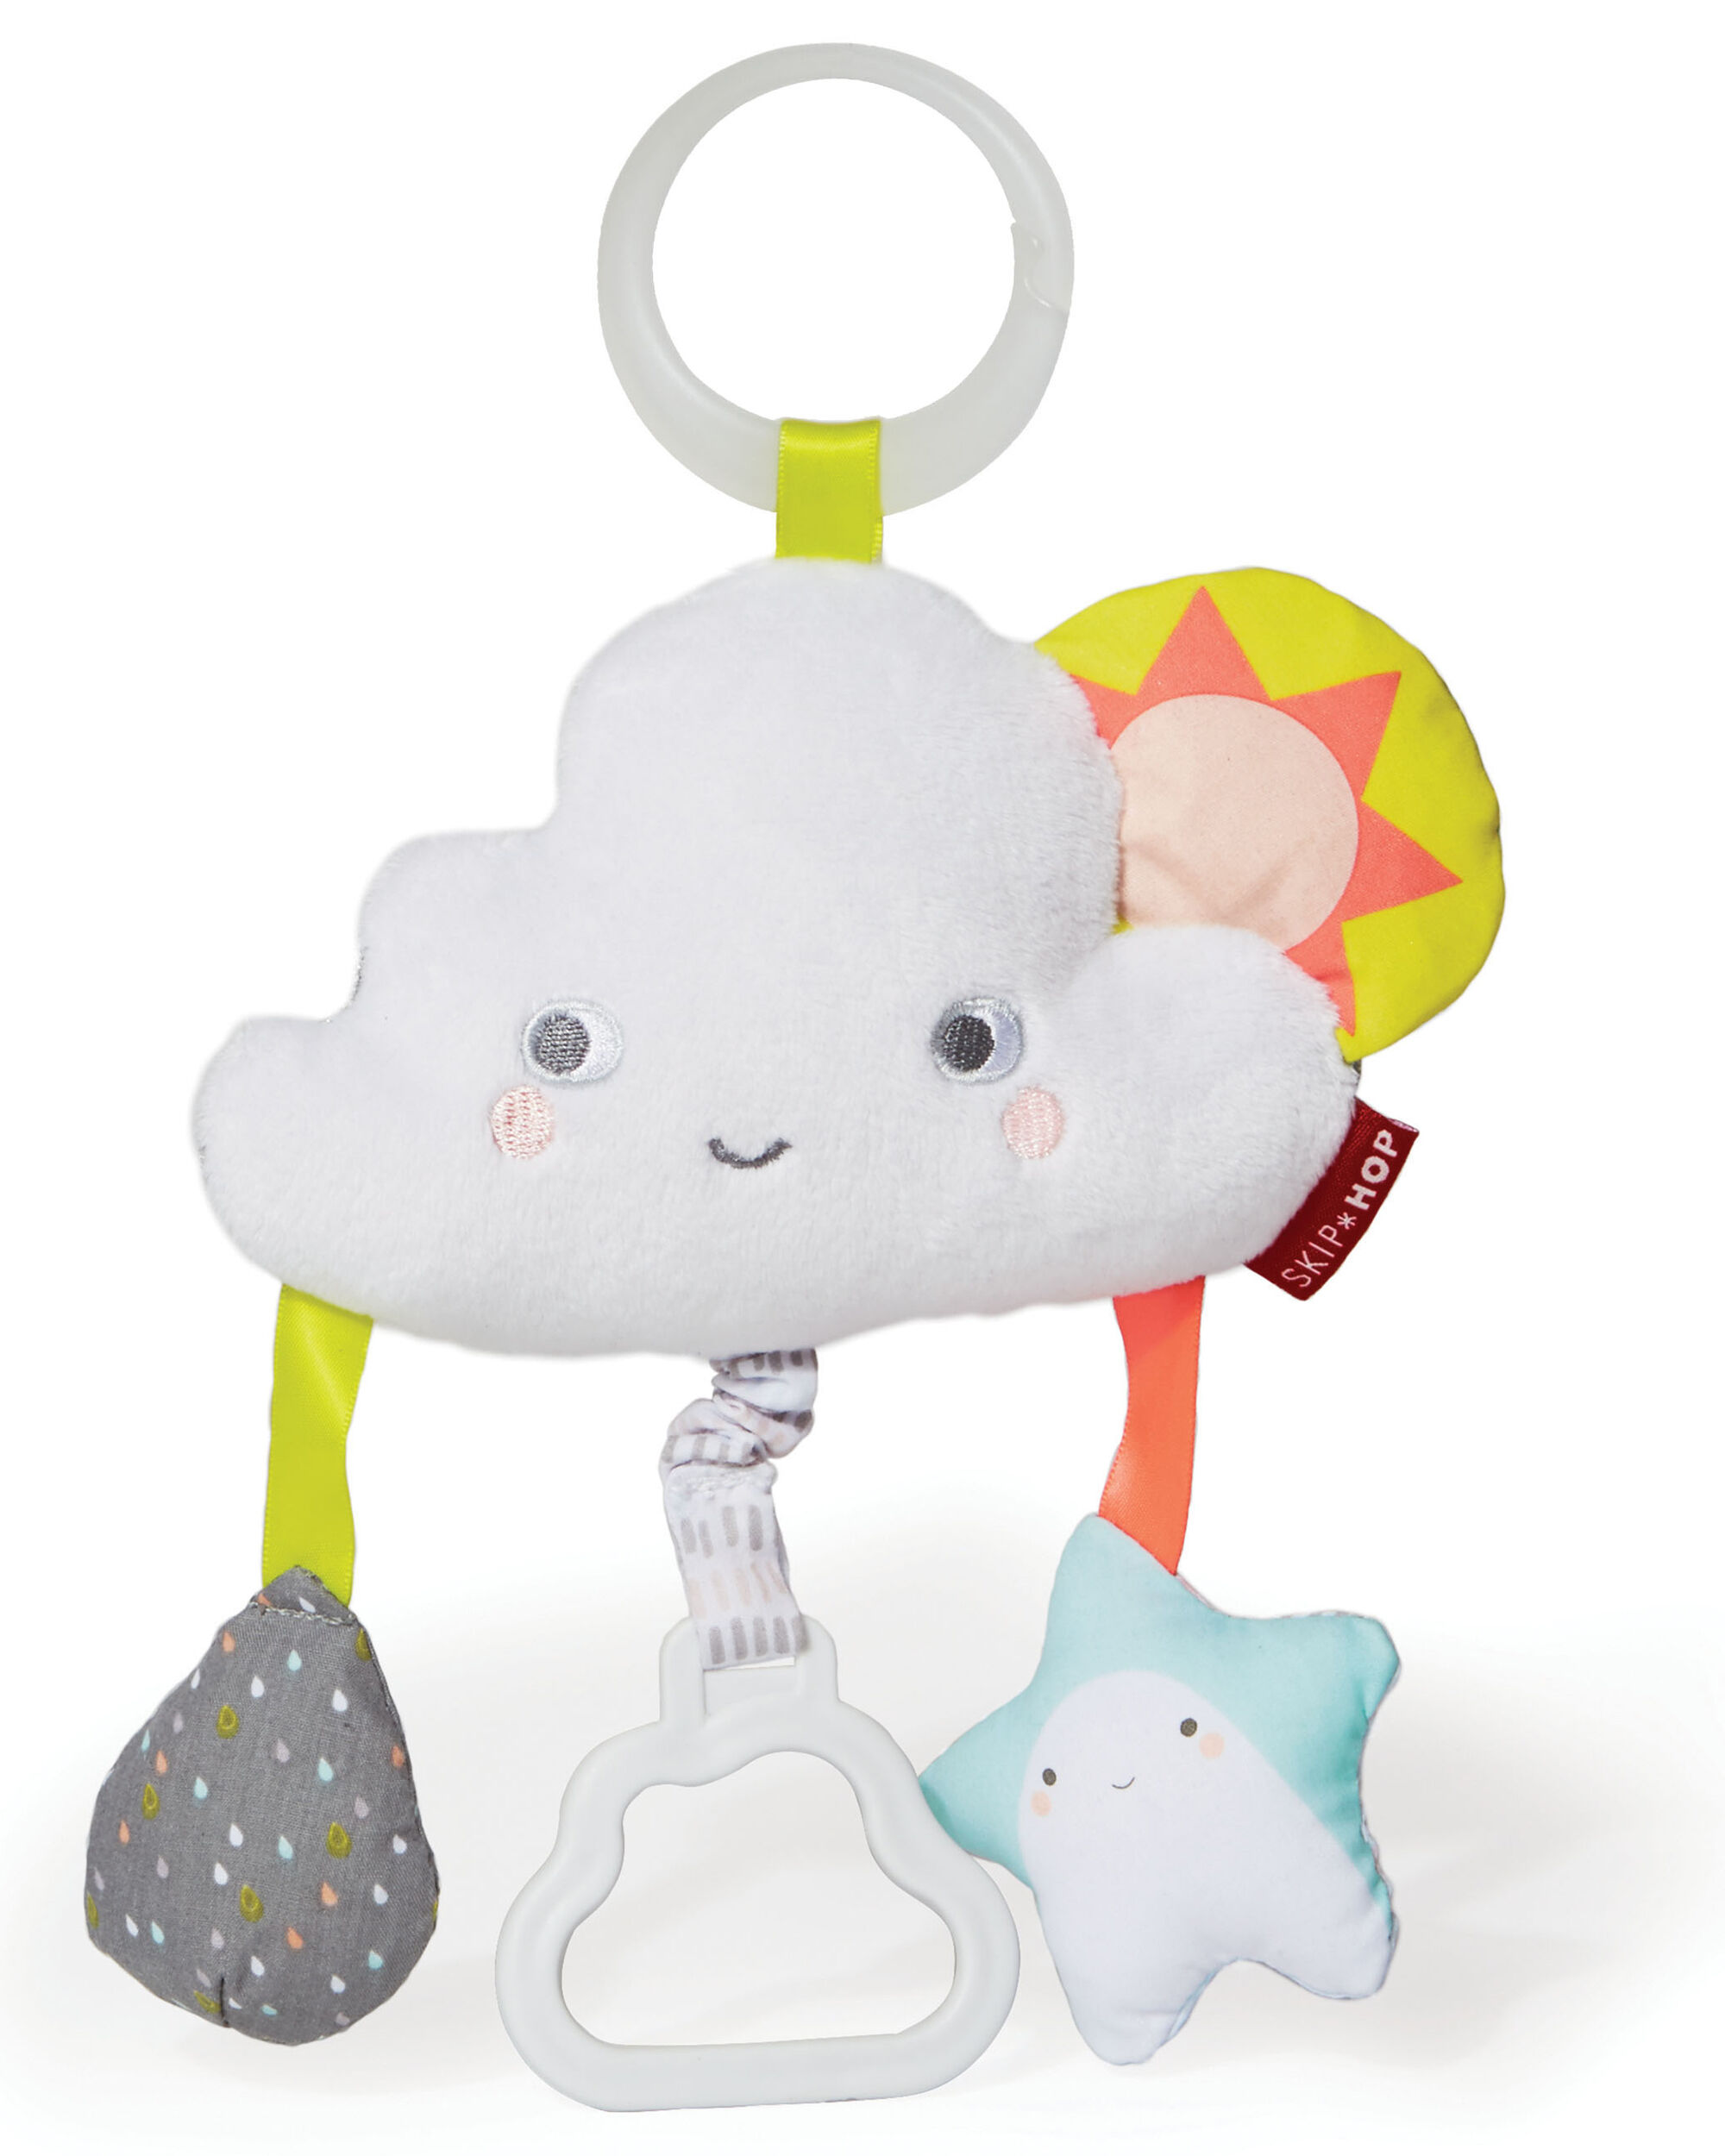 Silver Lining Cloud Jitter Stroller Baby Toy Skiphop Com